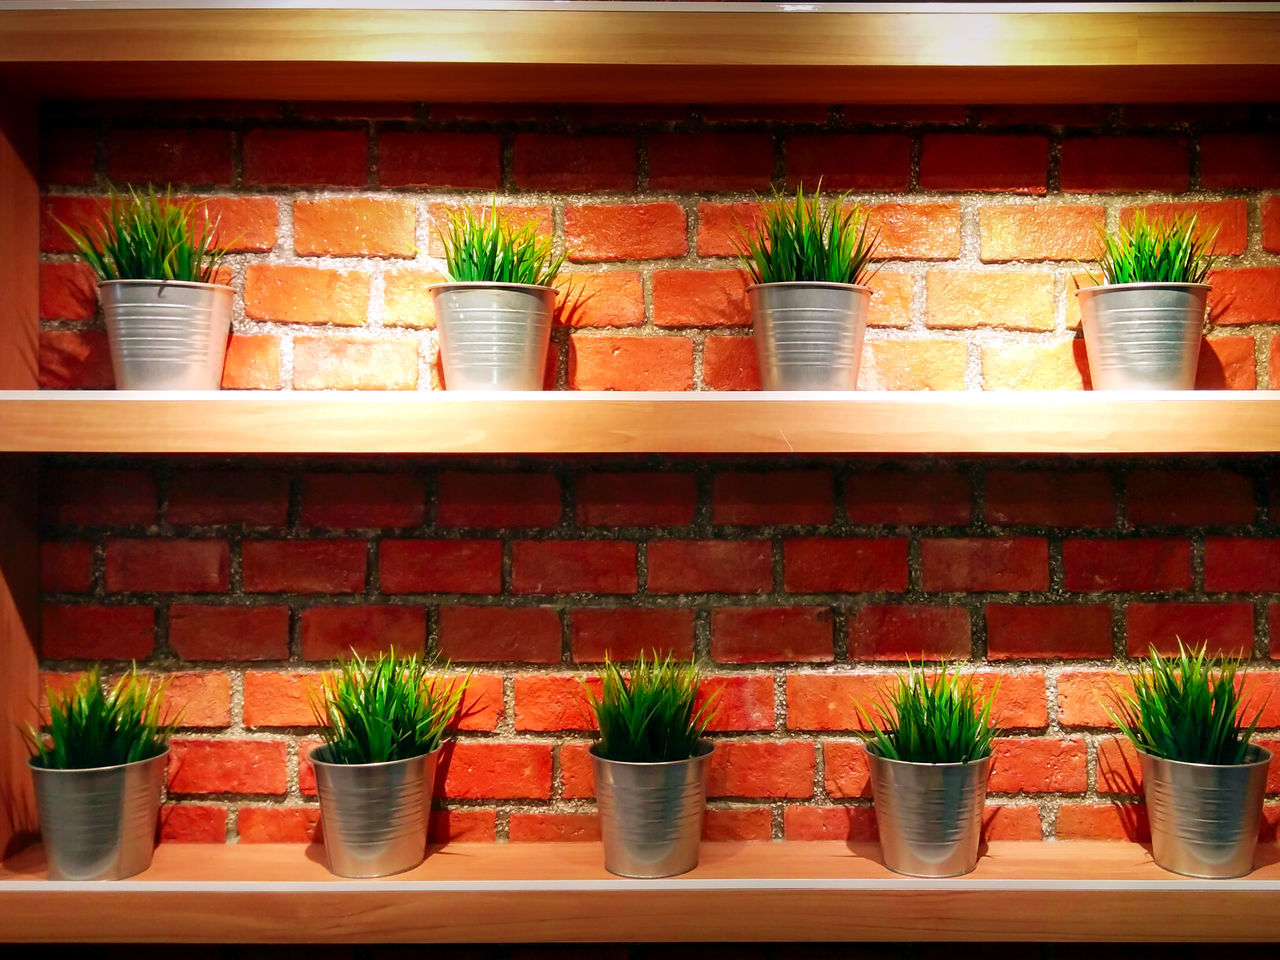 Pots of Fresh Grass Lined against a Brick Wall Arrangement Choice Contrasting Colors Day De Design Exit Sign Food Freshness Indoors  Interior Design No People Plant Potted Plant Refreshment Shelf Store Variation Window Box